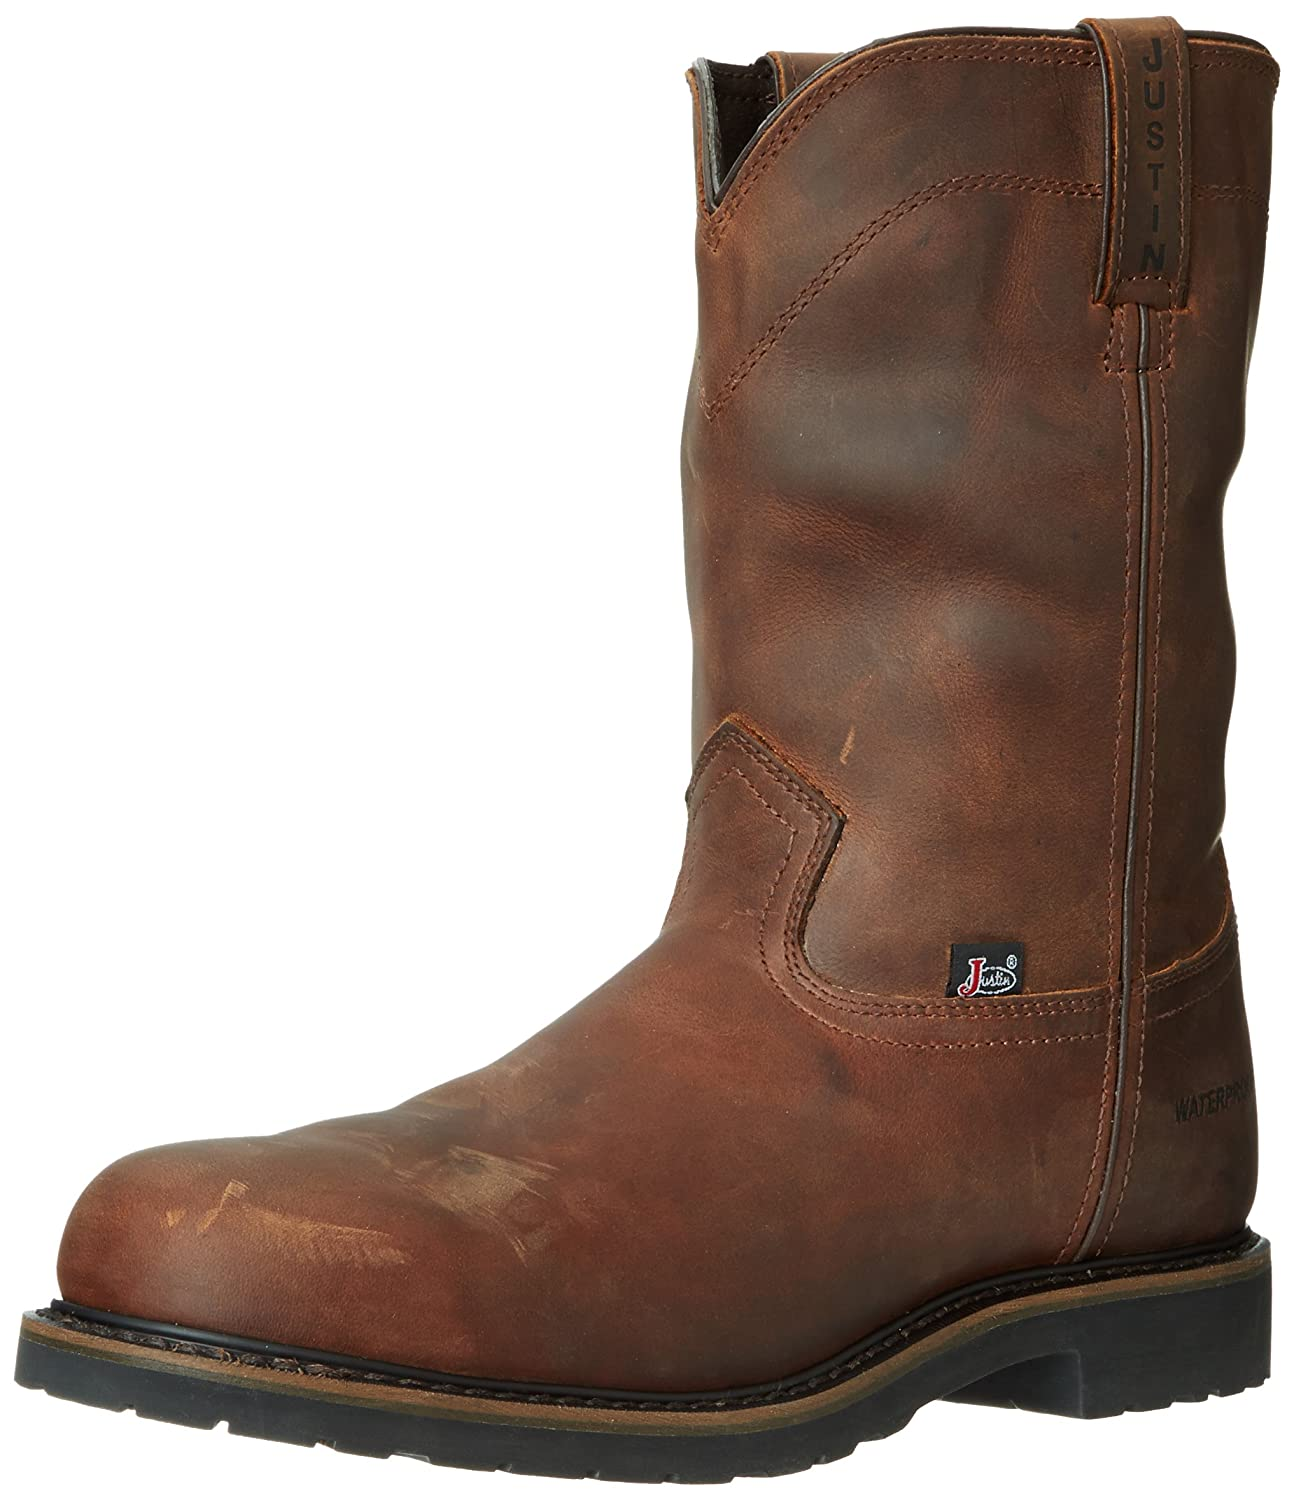 Justin Original Work Boots Men 's Worker 2つSteeltoe Work Boot B004C6TXU6 11.5 D(M) US|Wyoming Waterproof Steel Toe Wyoming Waterproof Steel Toe 11.5 D(M) US